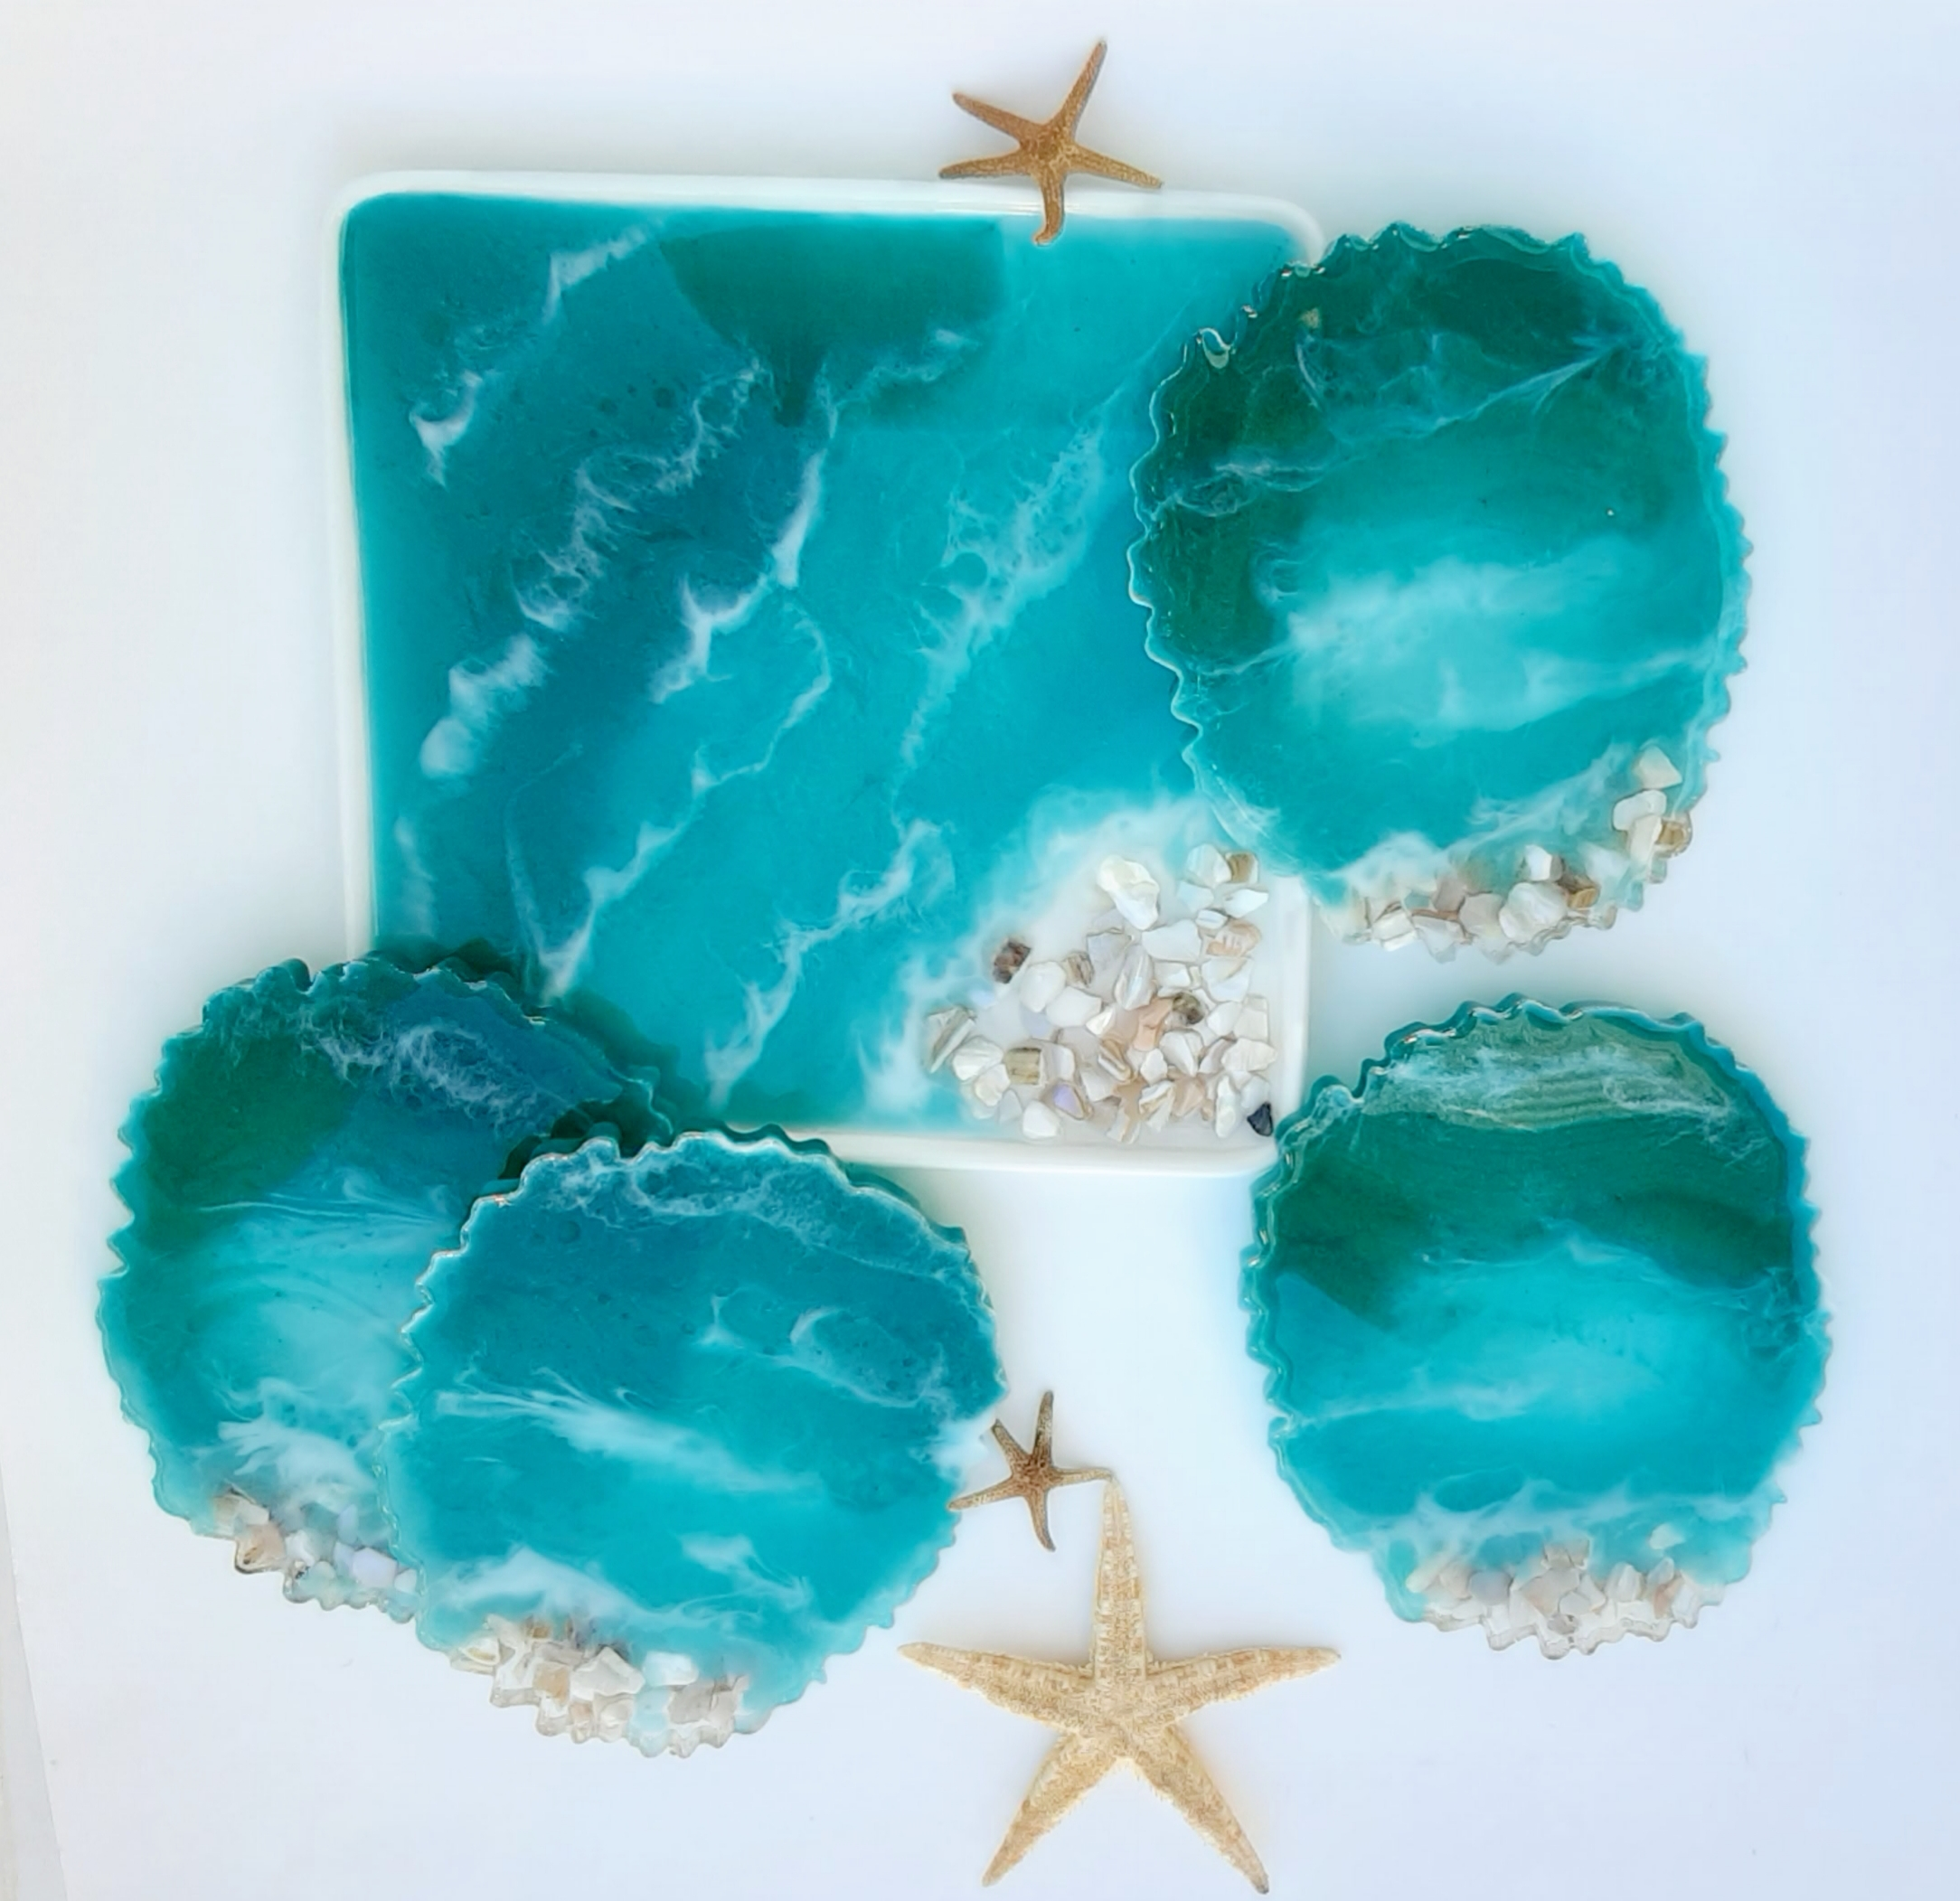 Resin coaster and trinket dish